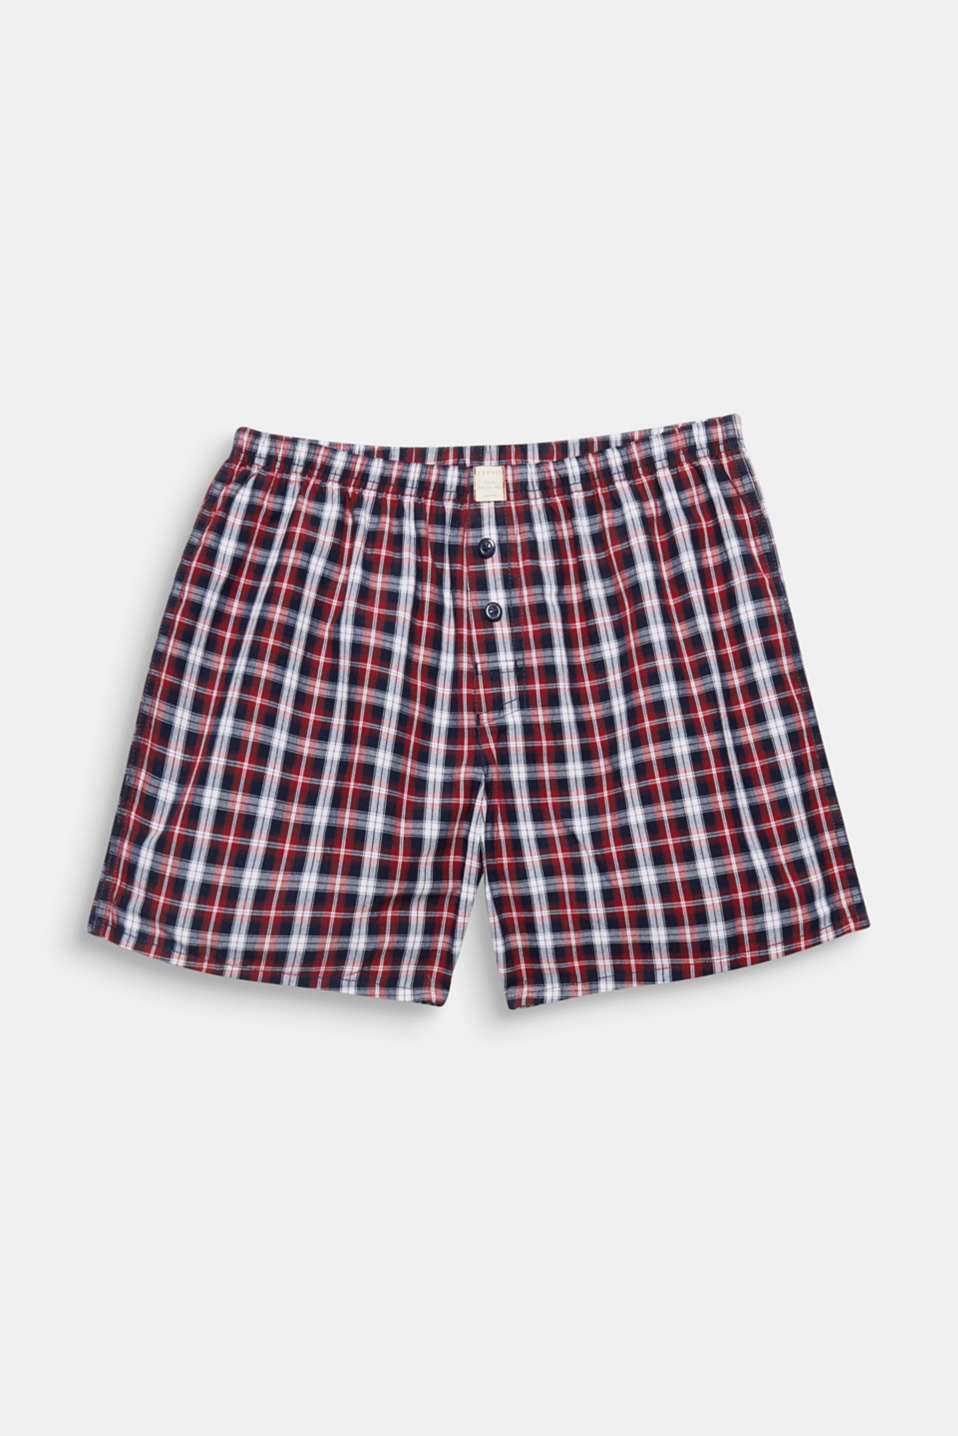 A classic check pattern is always on trend! And the cotton fabric of these boxer shorts also makes them incredibly comfortable!